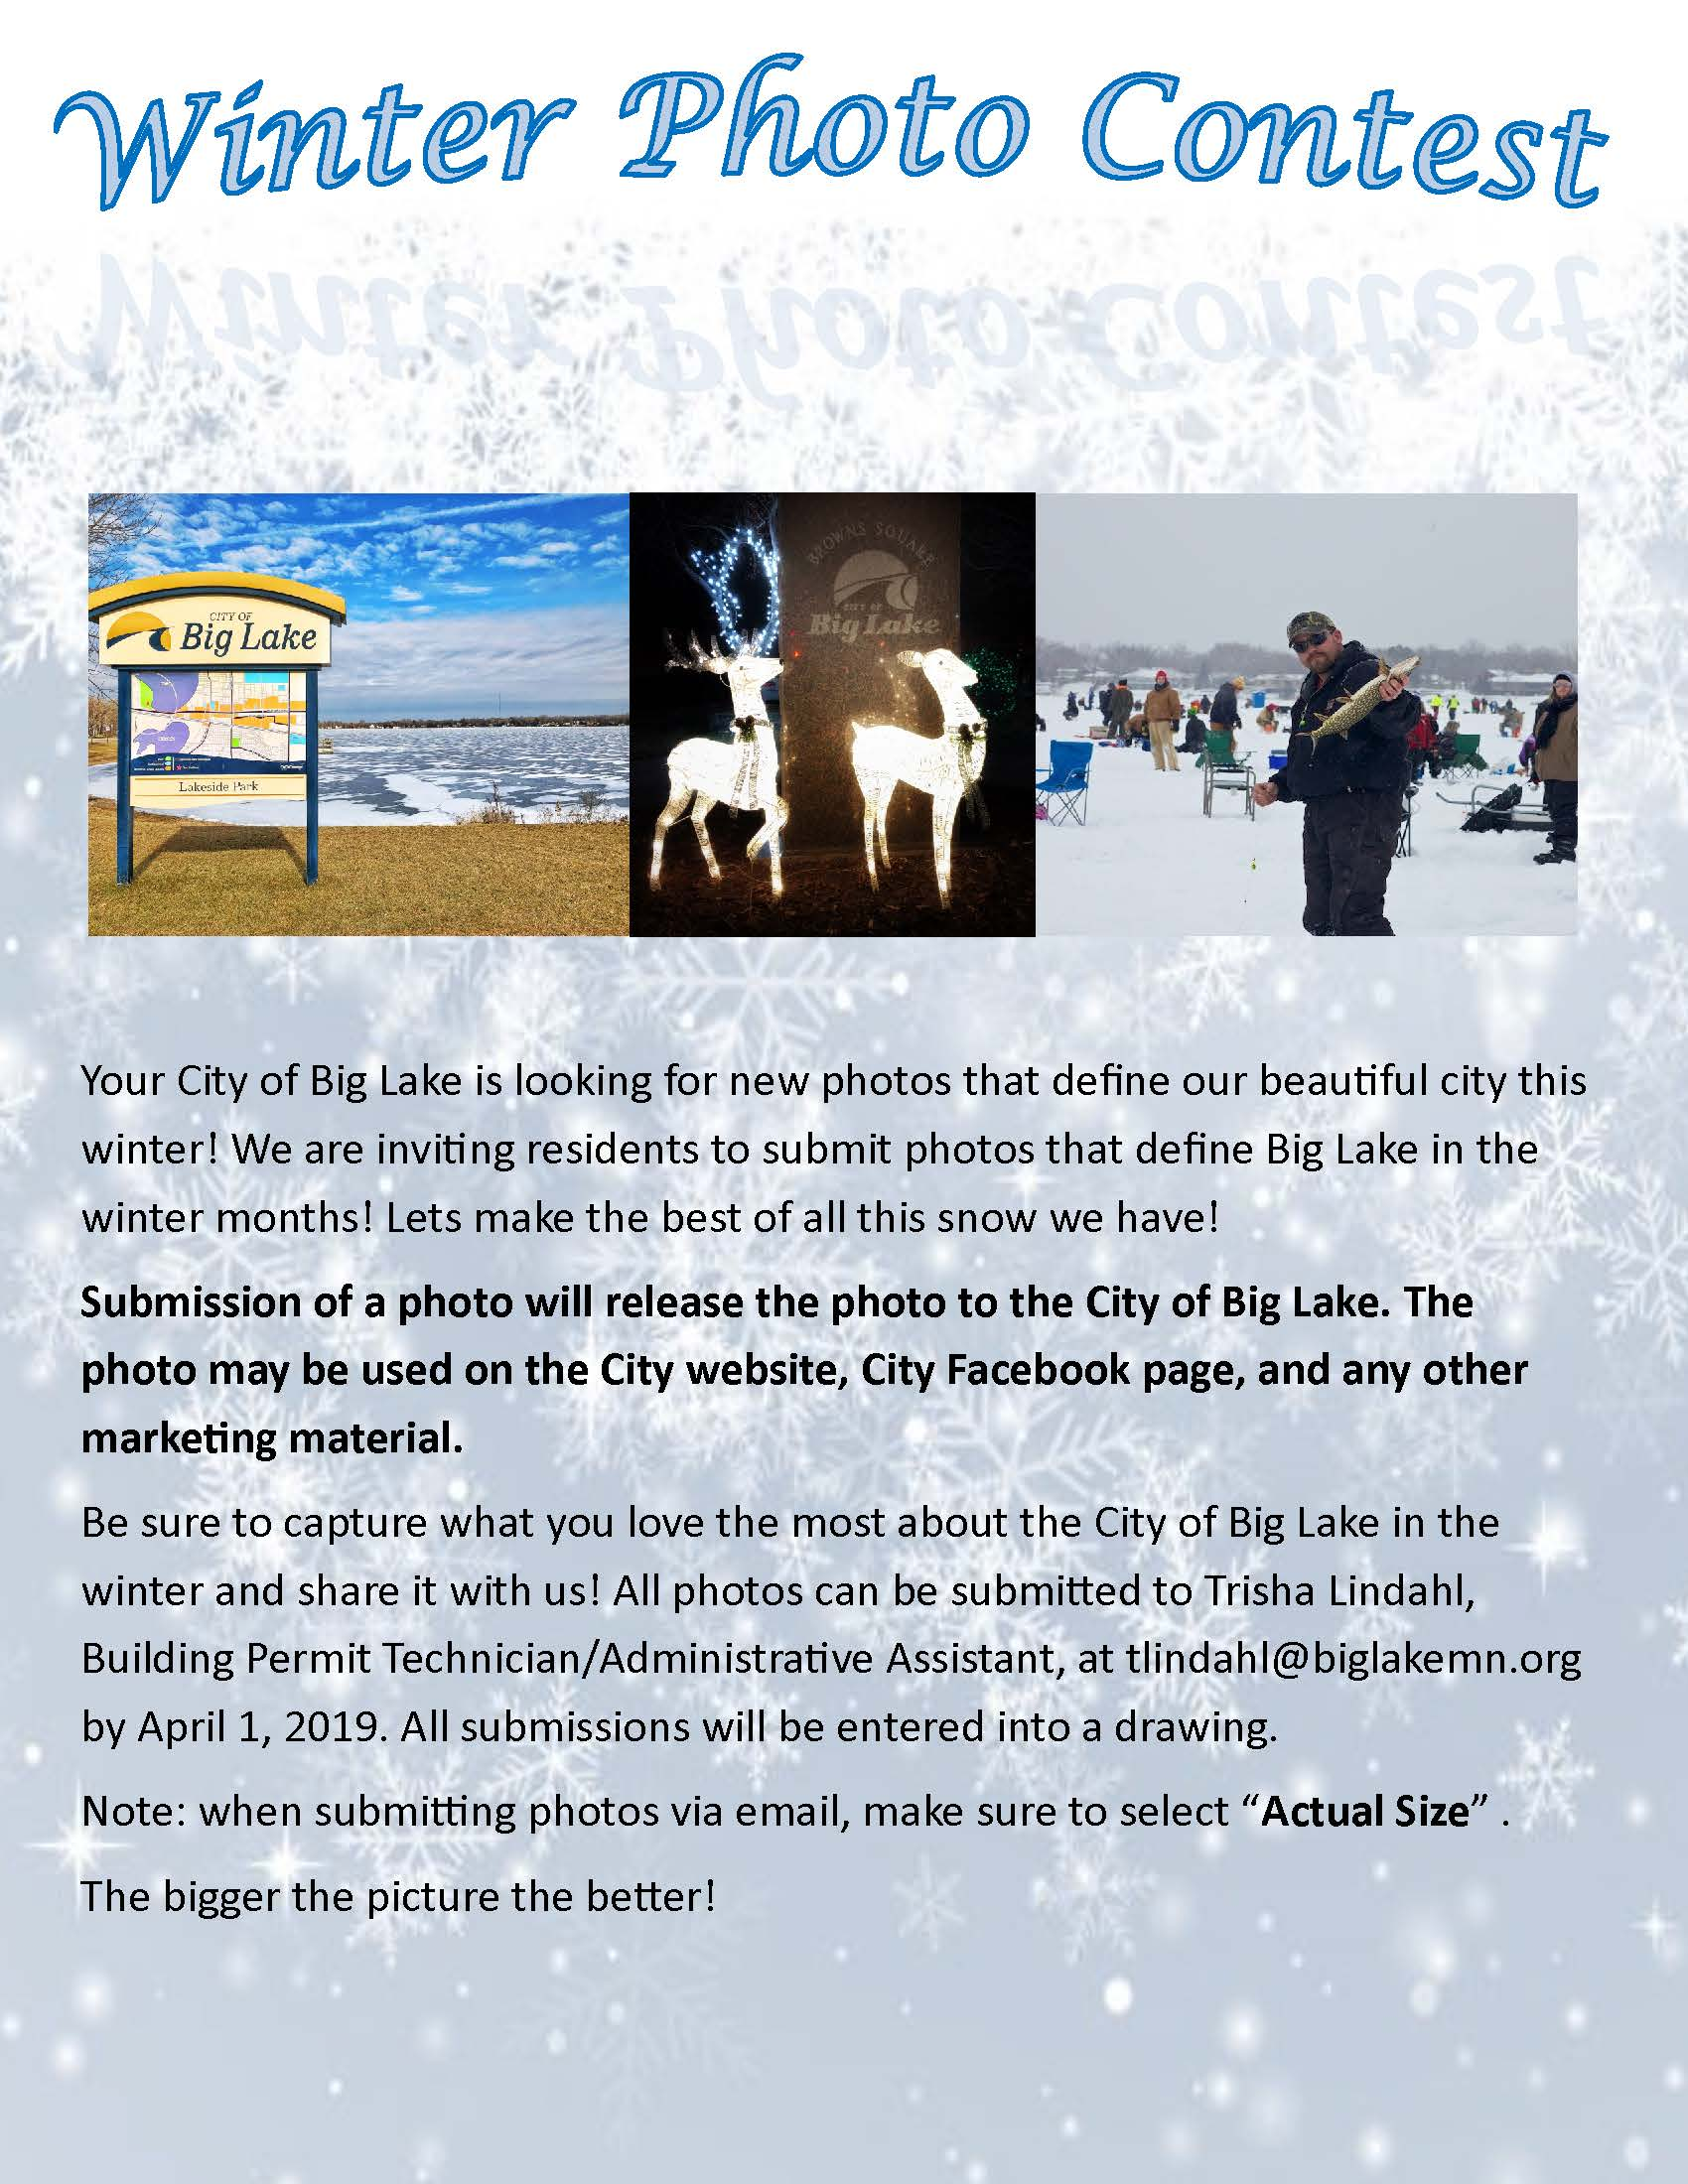 Winter Photo Contest Flyer